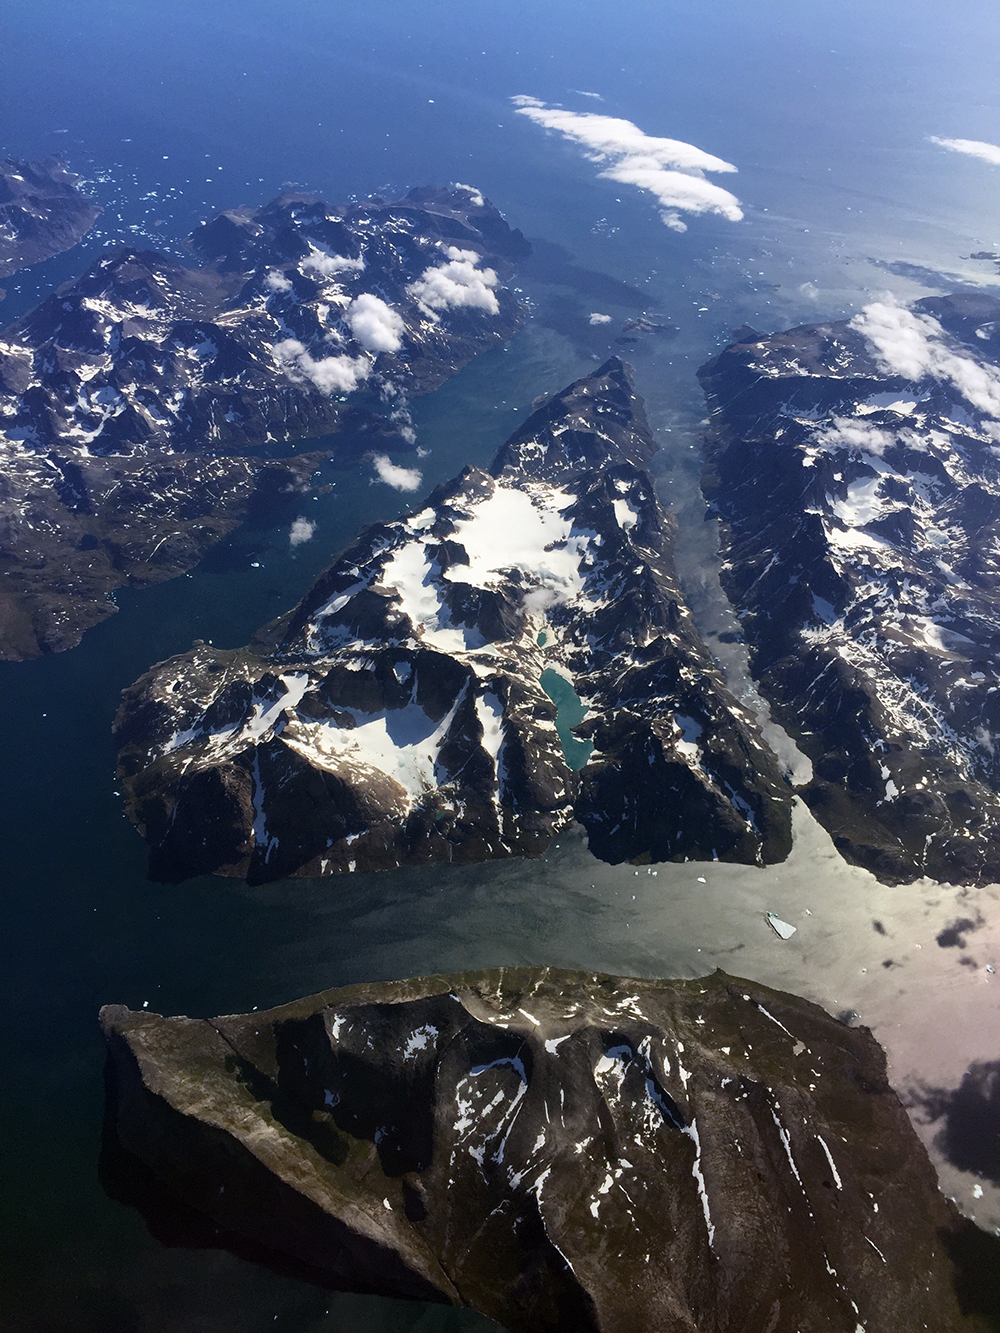 Ikeq Island on the southern tip of Greenland